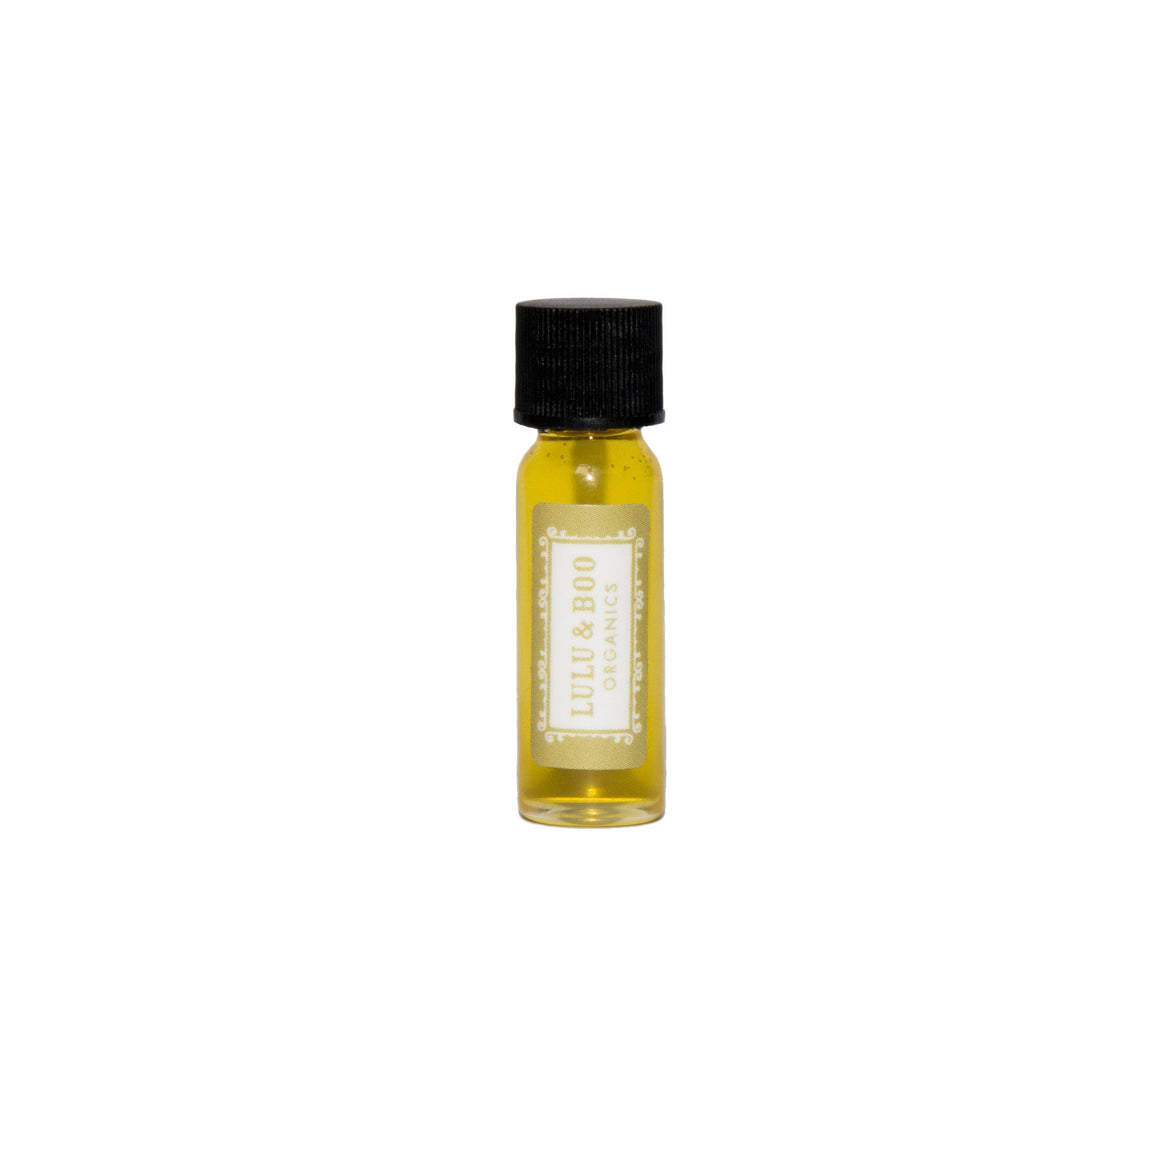 Chocolate Orange Cleansing Oil Sample - Lulu & Boo Organics